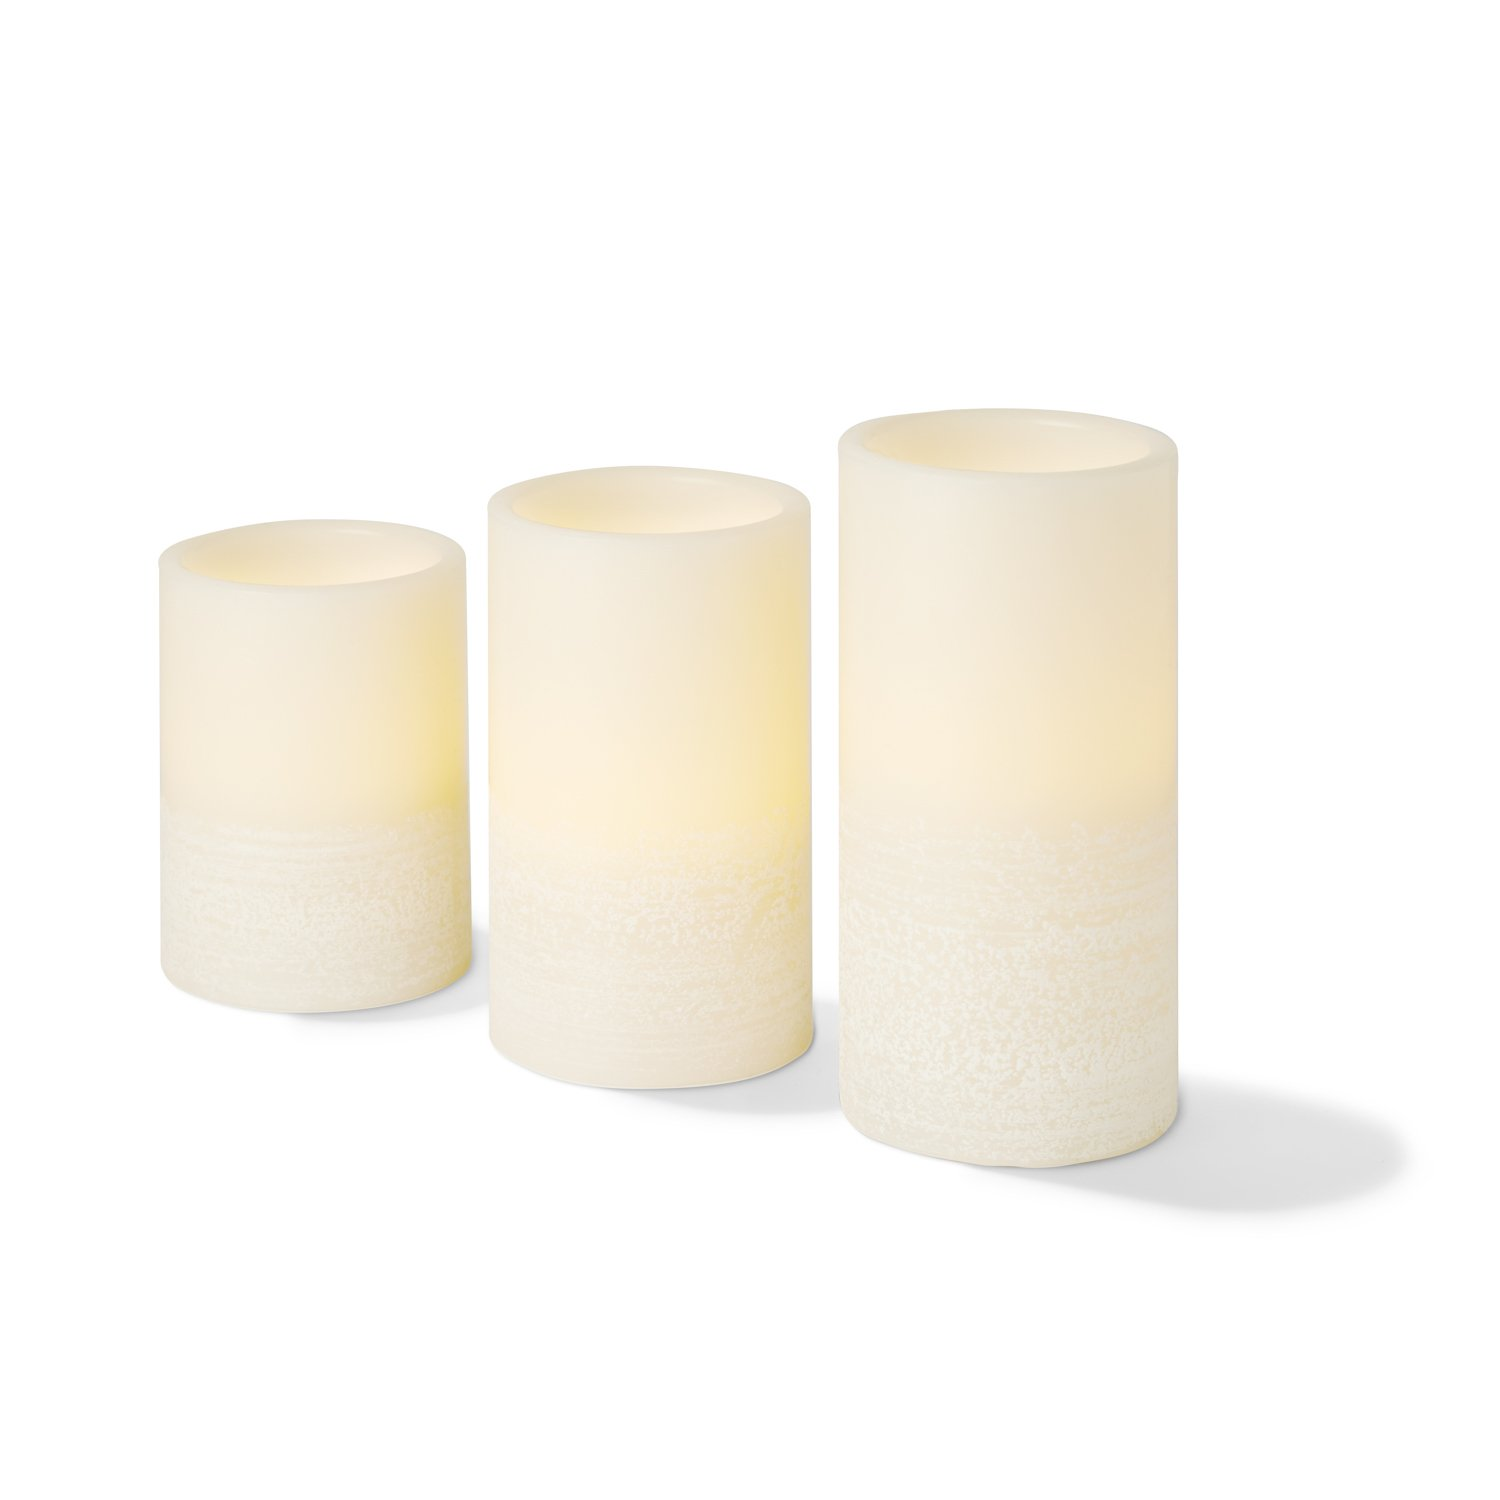 Wax Flameless Pillar Candles with Remote, 4'',5'',6'' Height, Warm White LEDs, Ivory Smooth Candle with Textured Base, Batteries Included - Set of 3